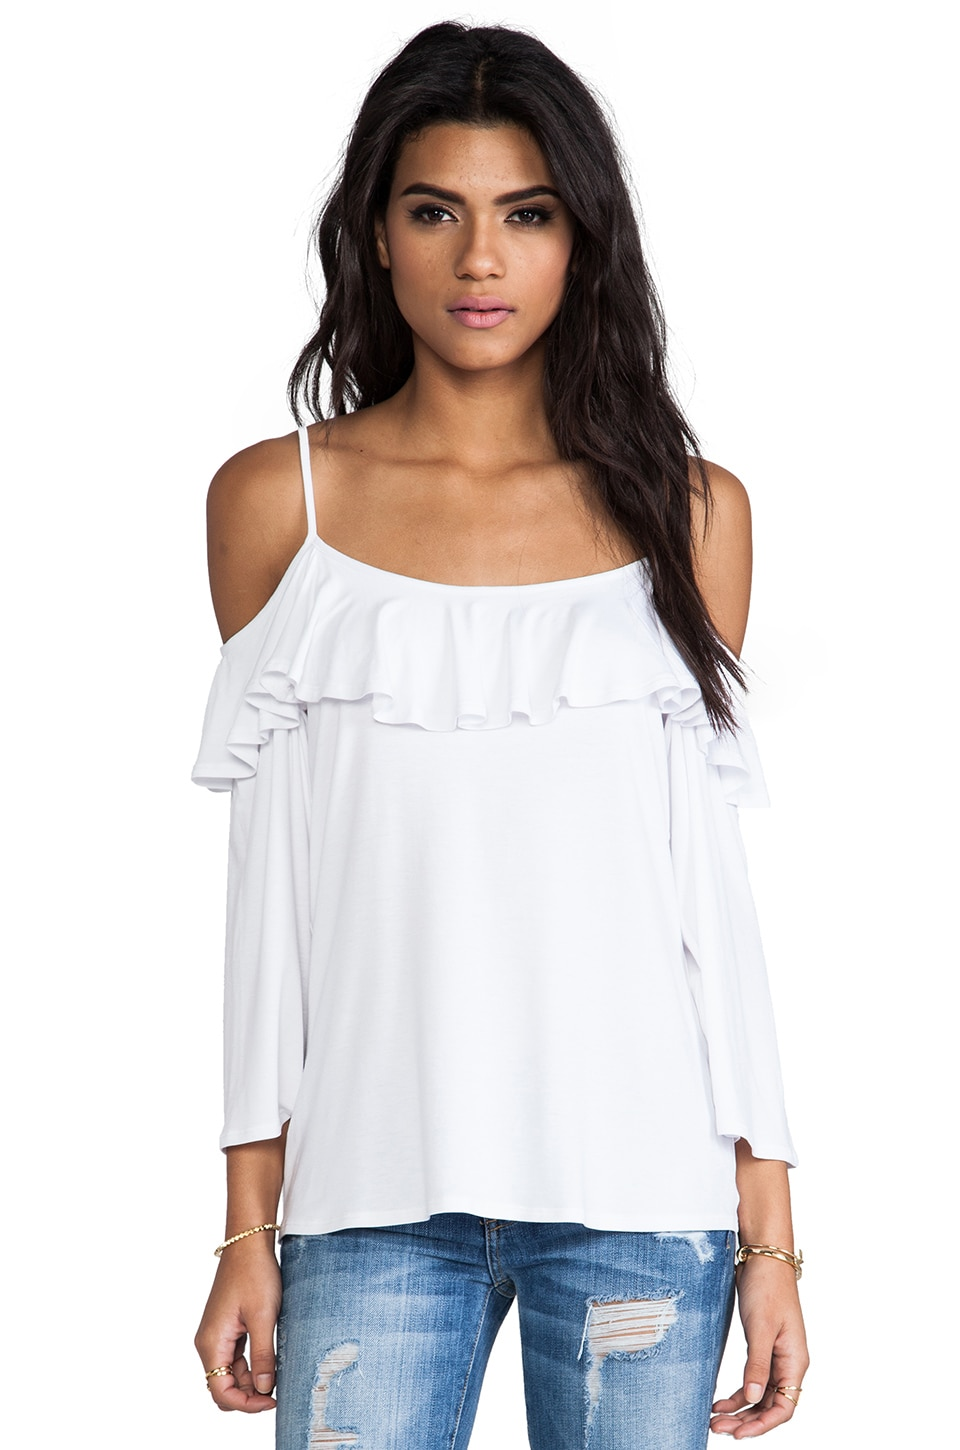 James & Joy Natalie Open Shoulder Top in White